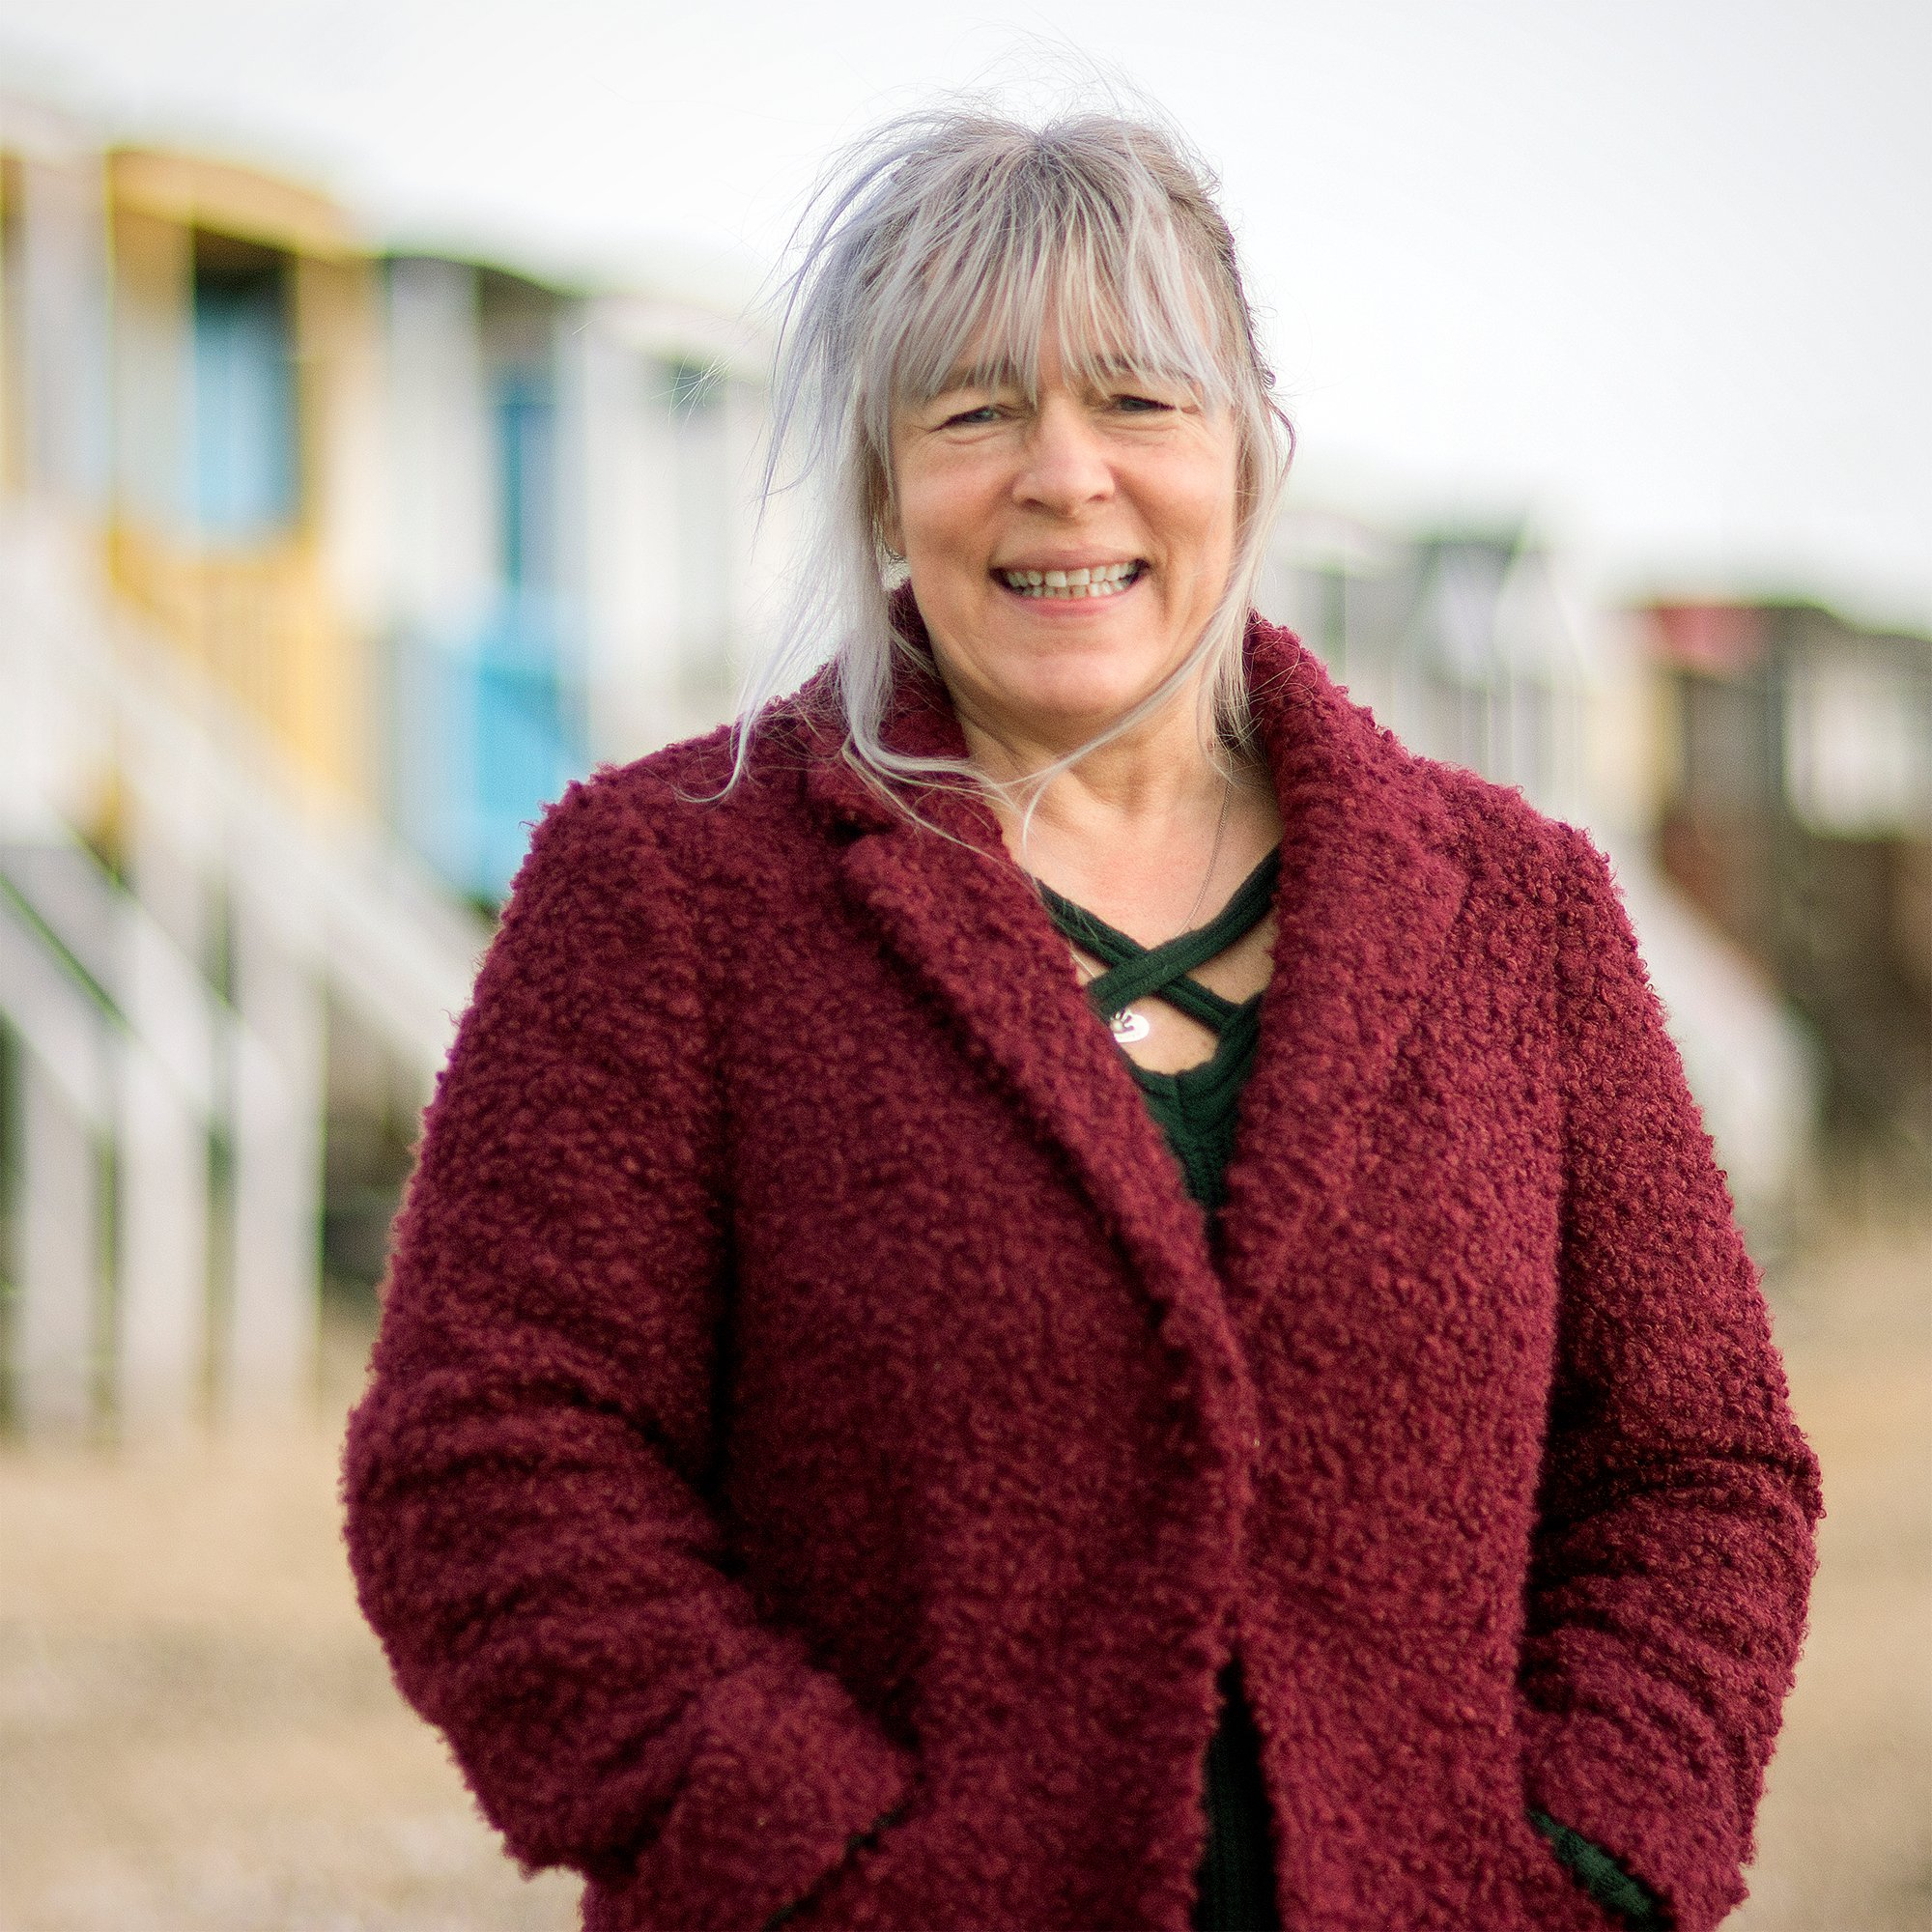 Jo Bates is the Green Party candidate for Southchurch.